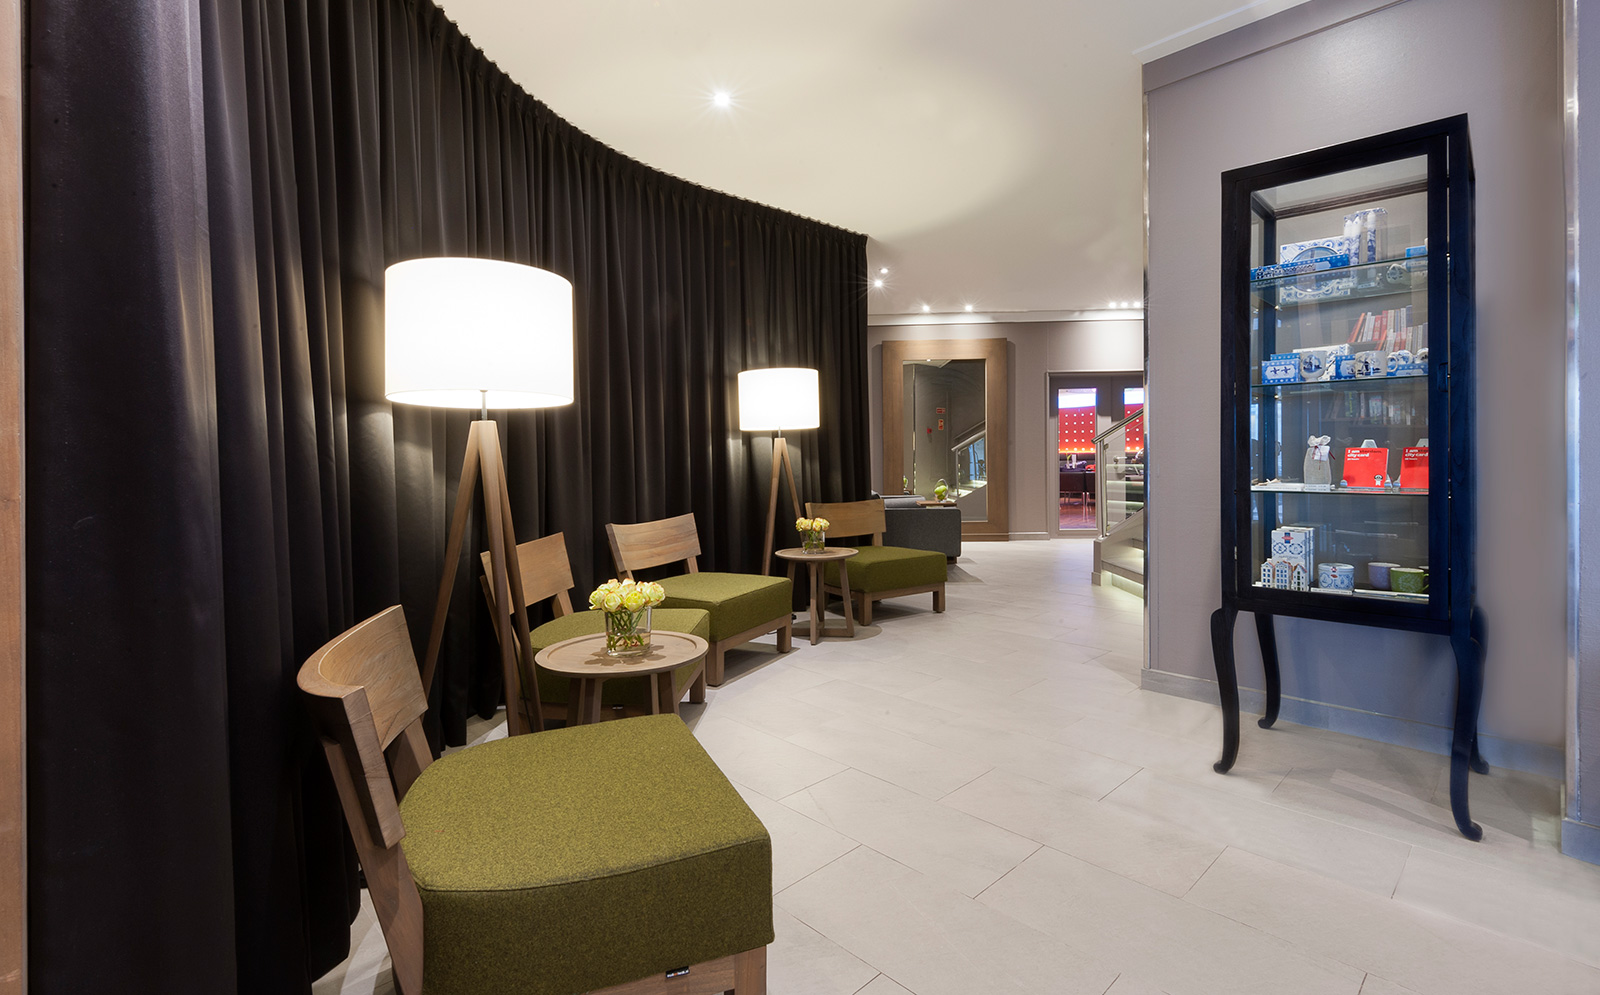 Luxury boutique hotel dam square amsterdam swissotel for Swissotel amsterdam